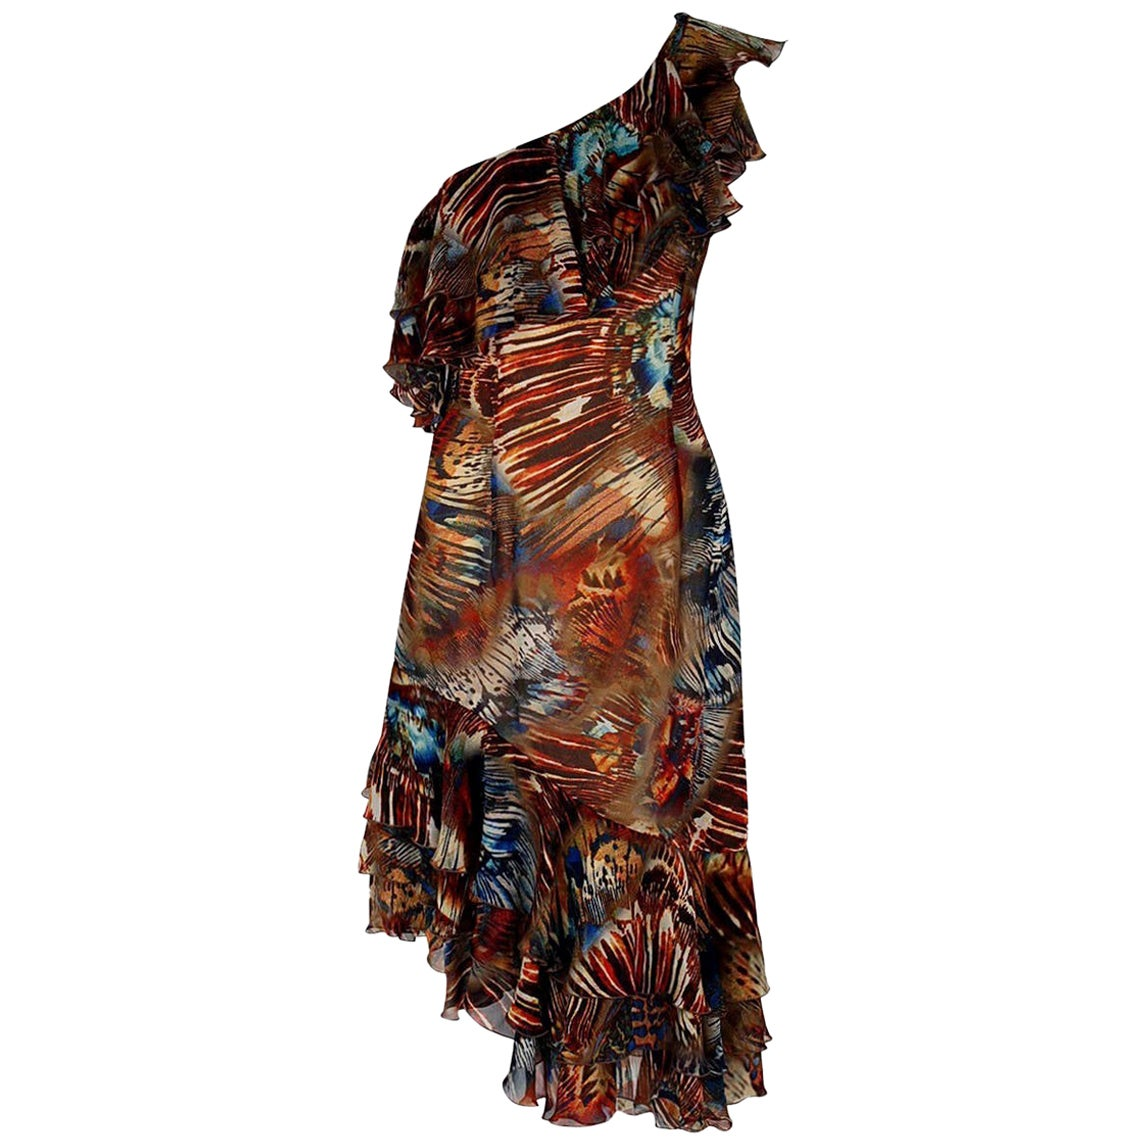 Vintage 1994 Thierry Mugler Couture Abstract Feather Print Silk Asymmetric Dress